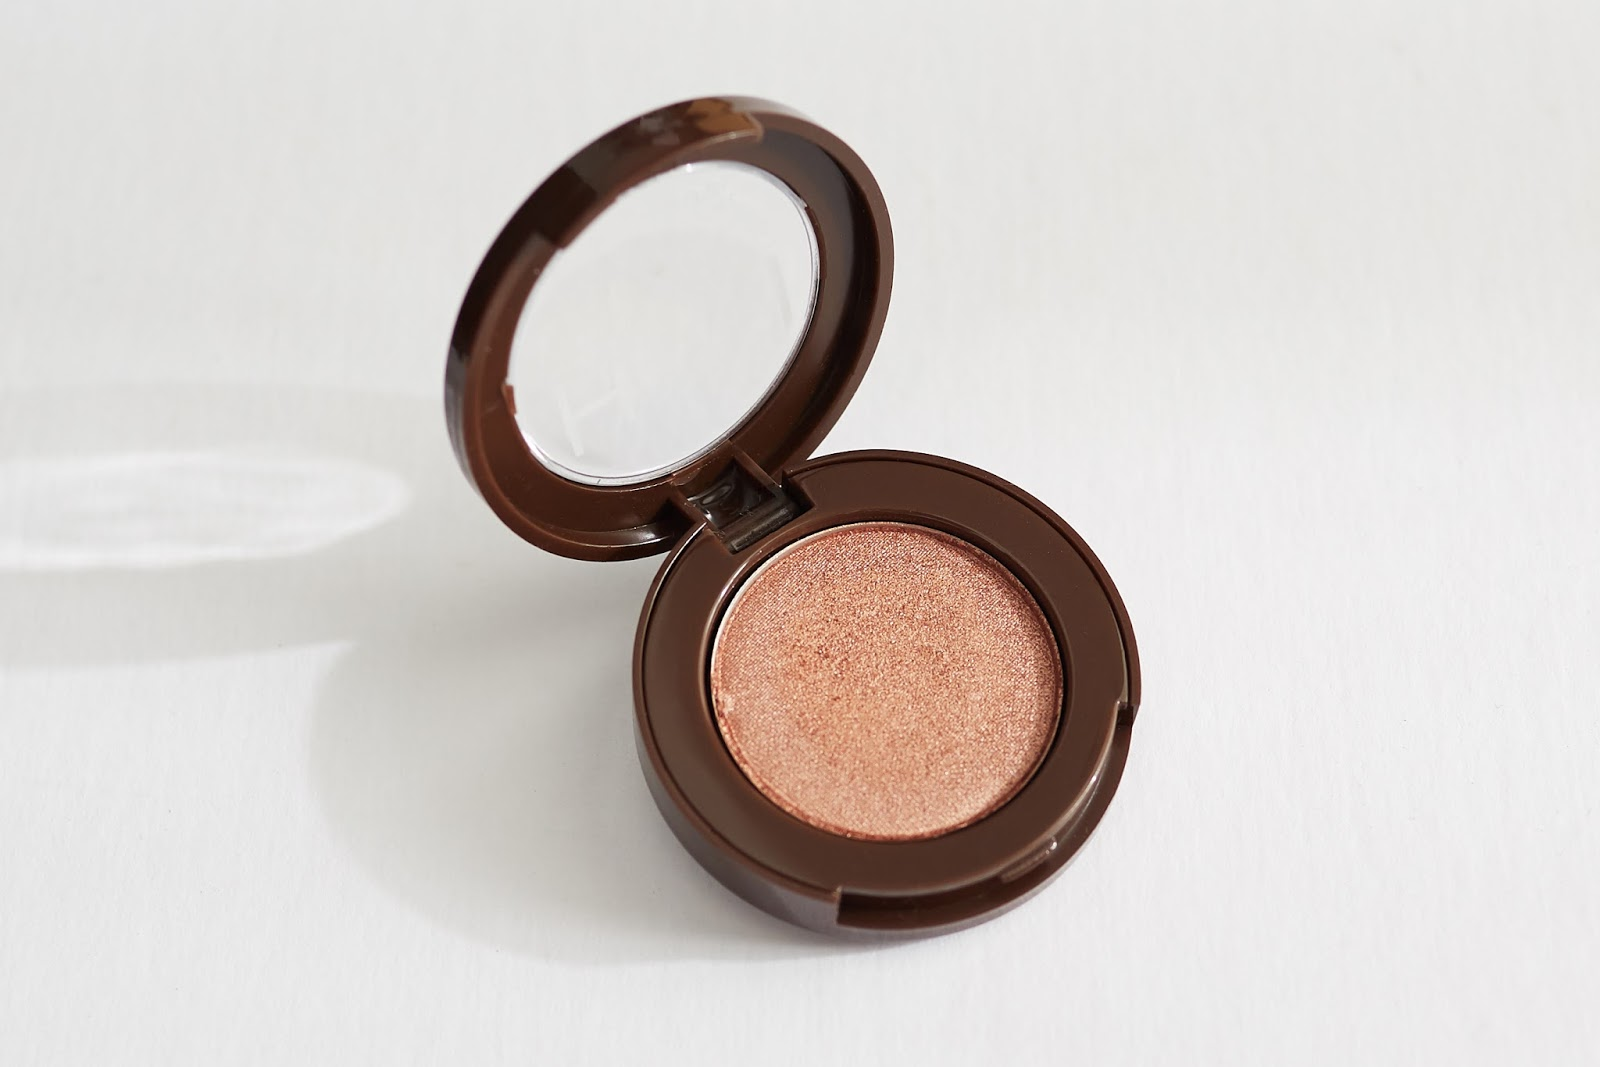 HAN Skin Care Cosmetics Eyeshadow in Romance natural makeup shimmery